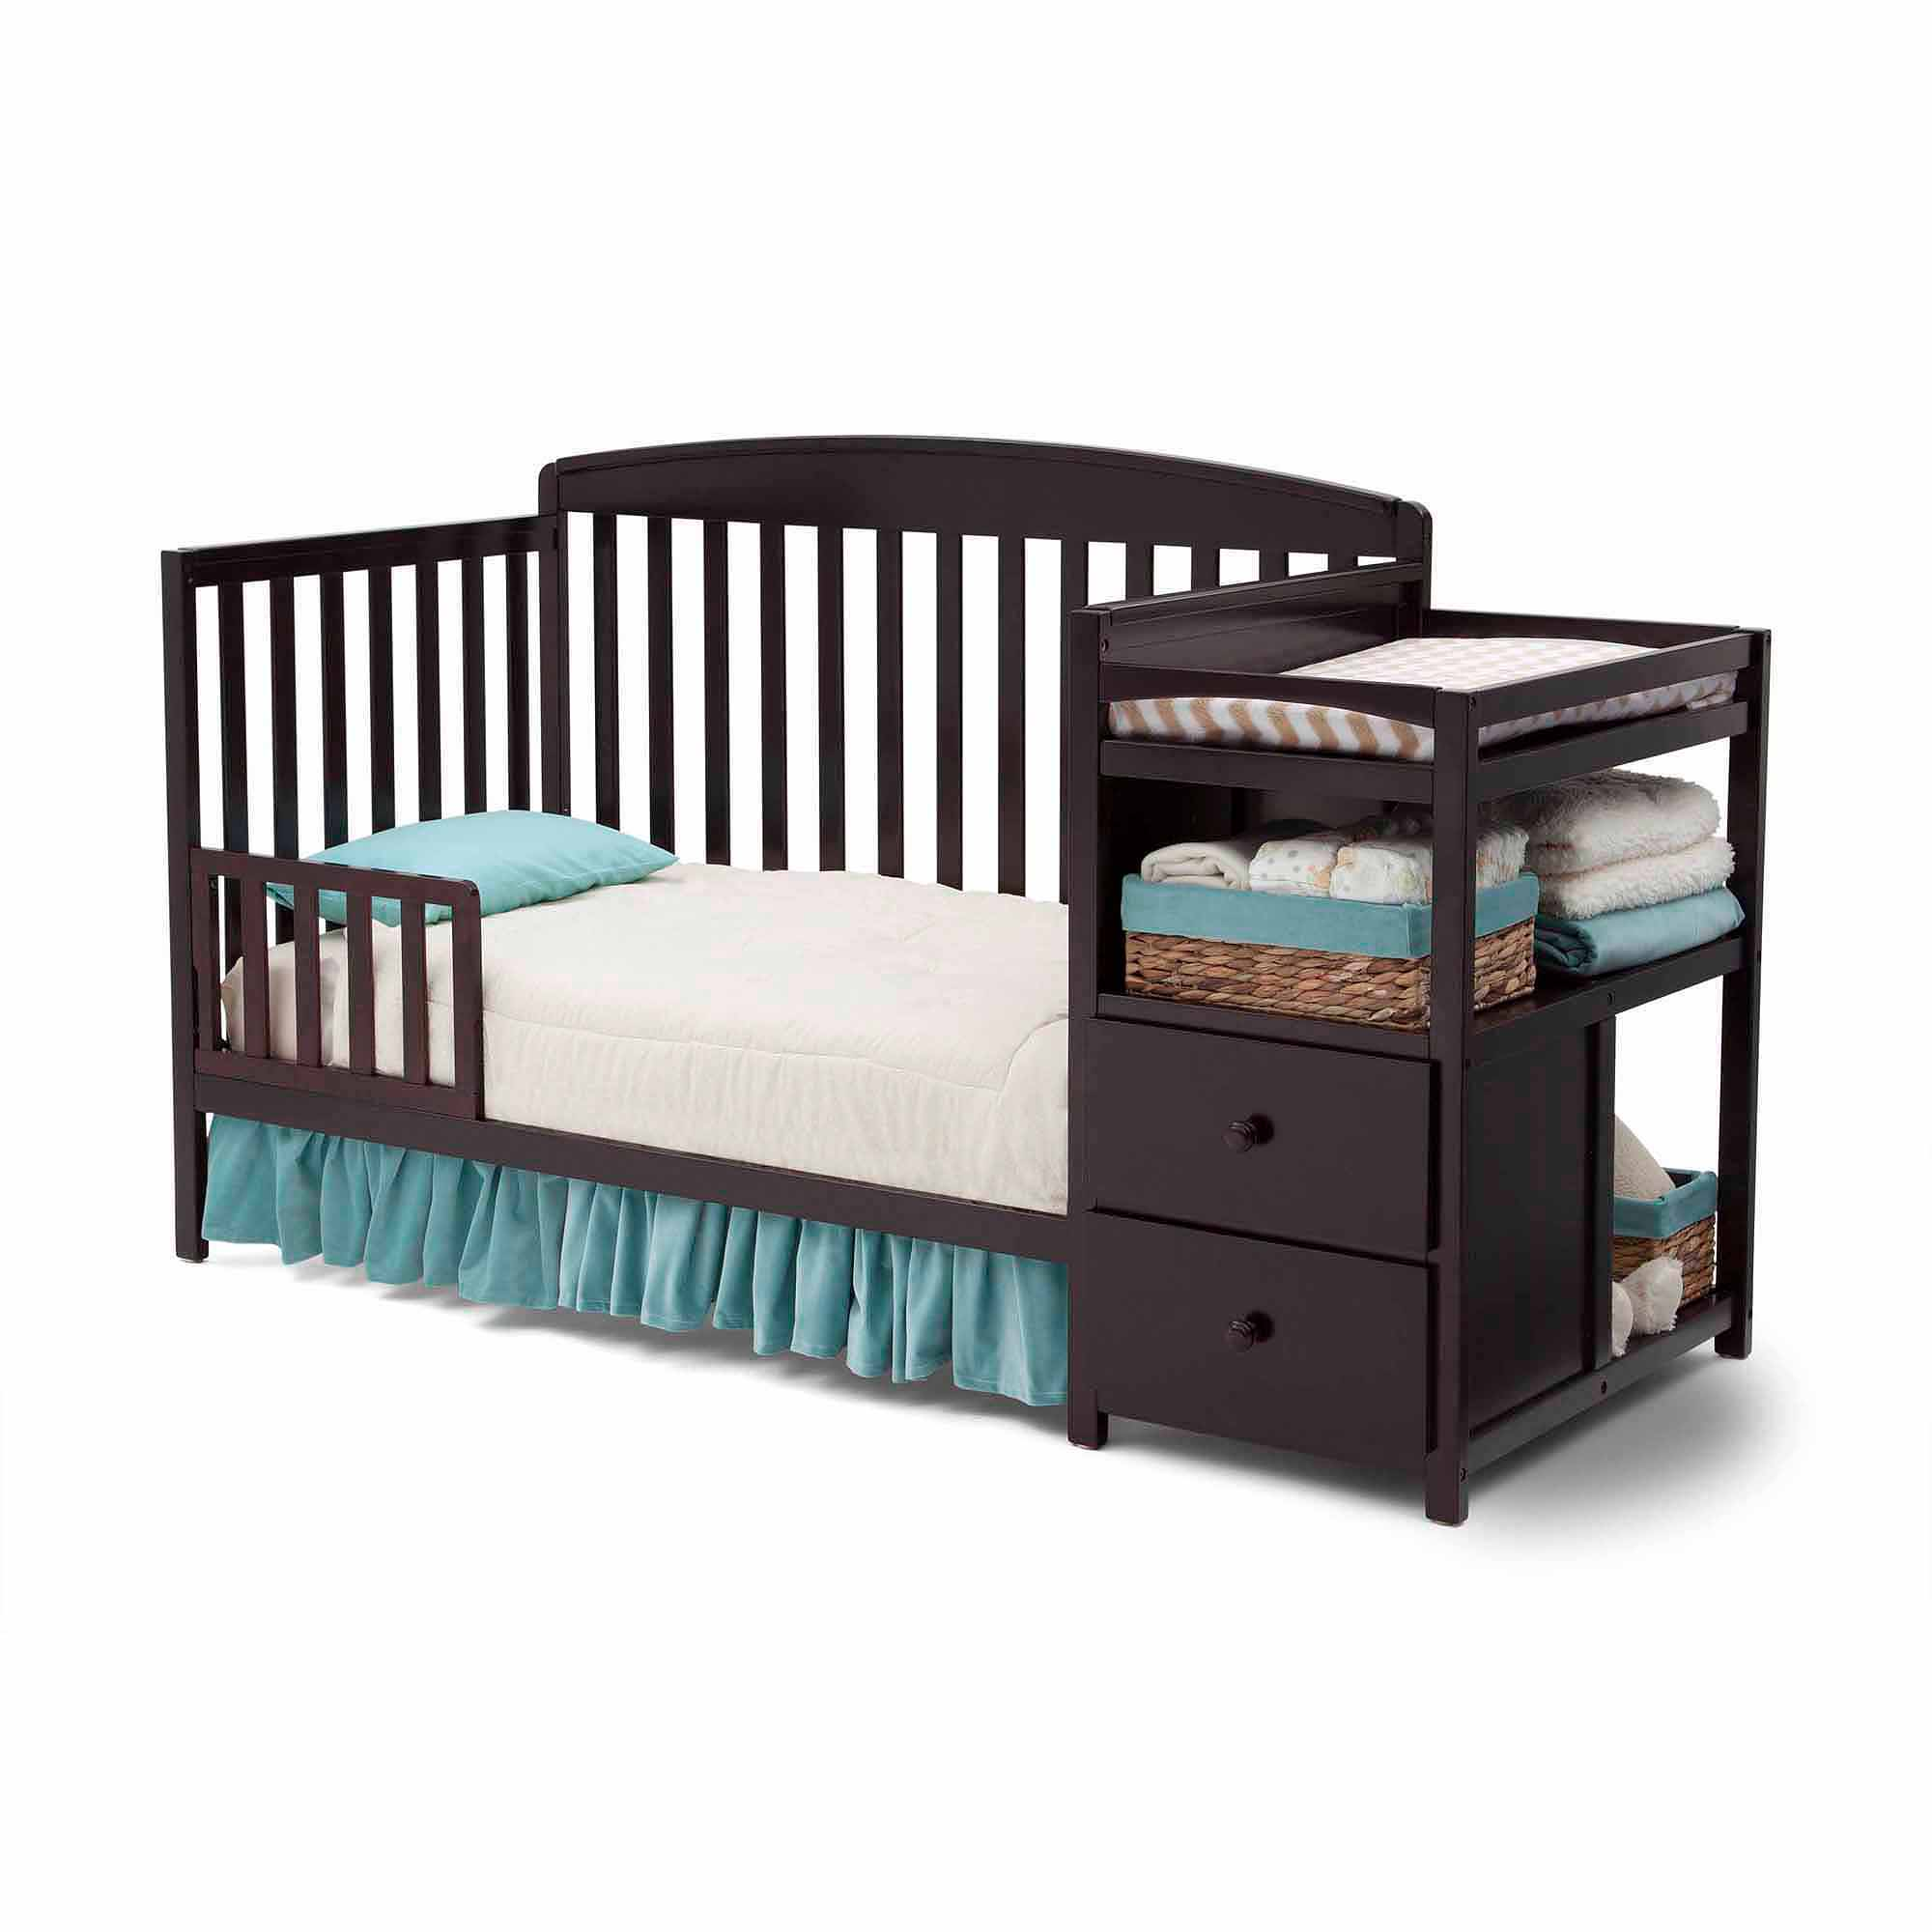 Delta Children Royal Convertible Crib N Changer, (Choose Your Finish)    Walmart.com